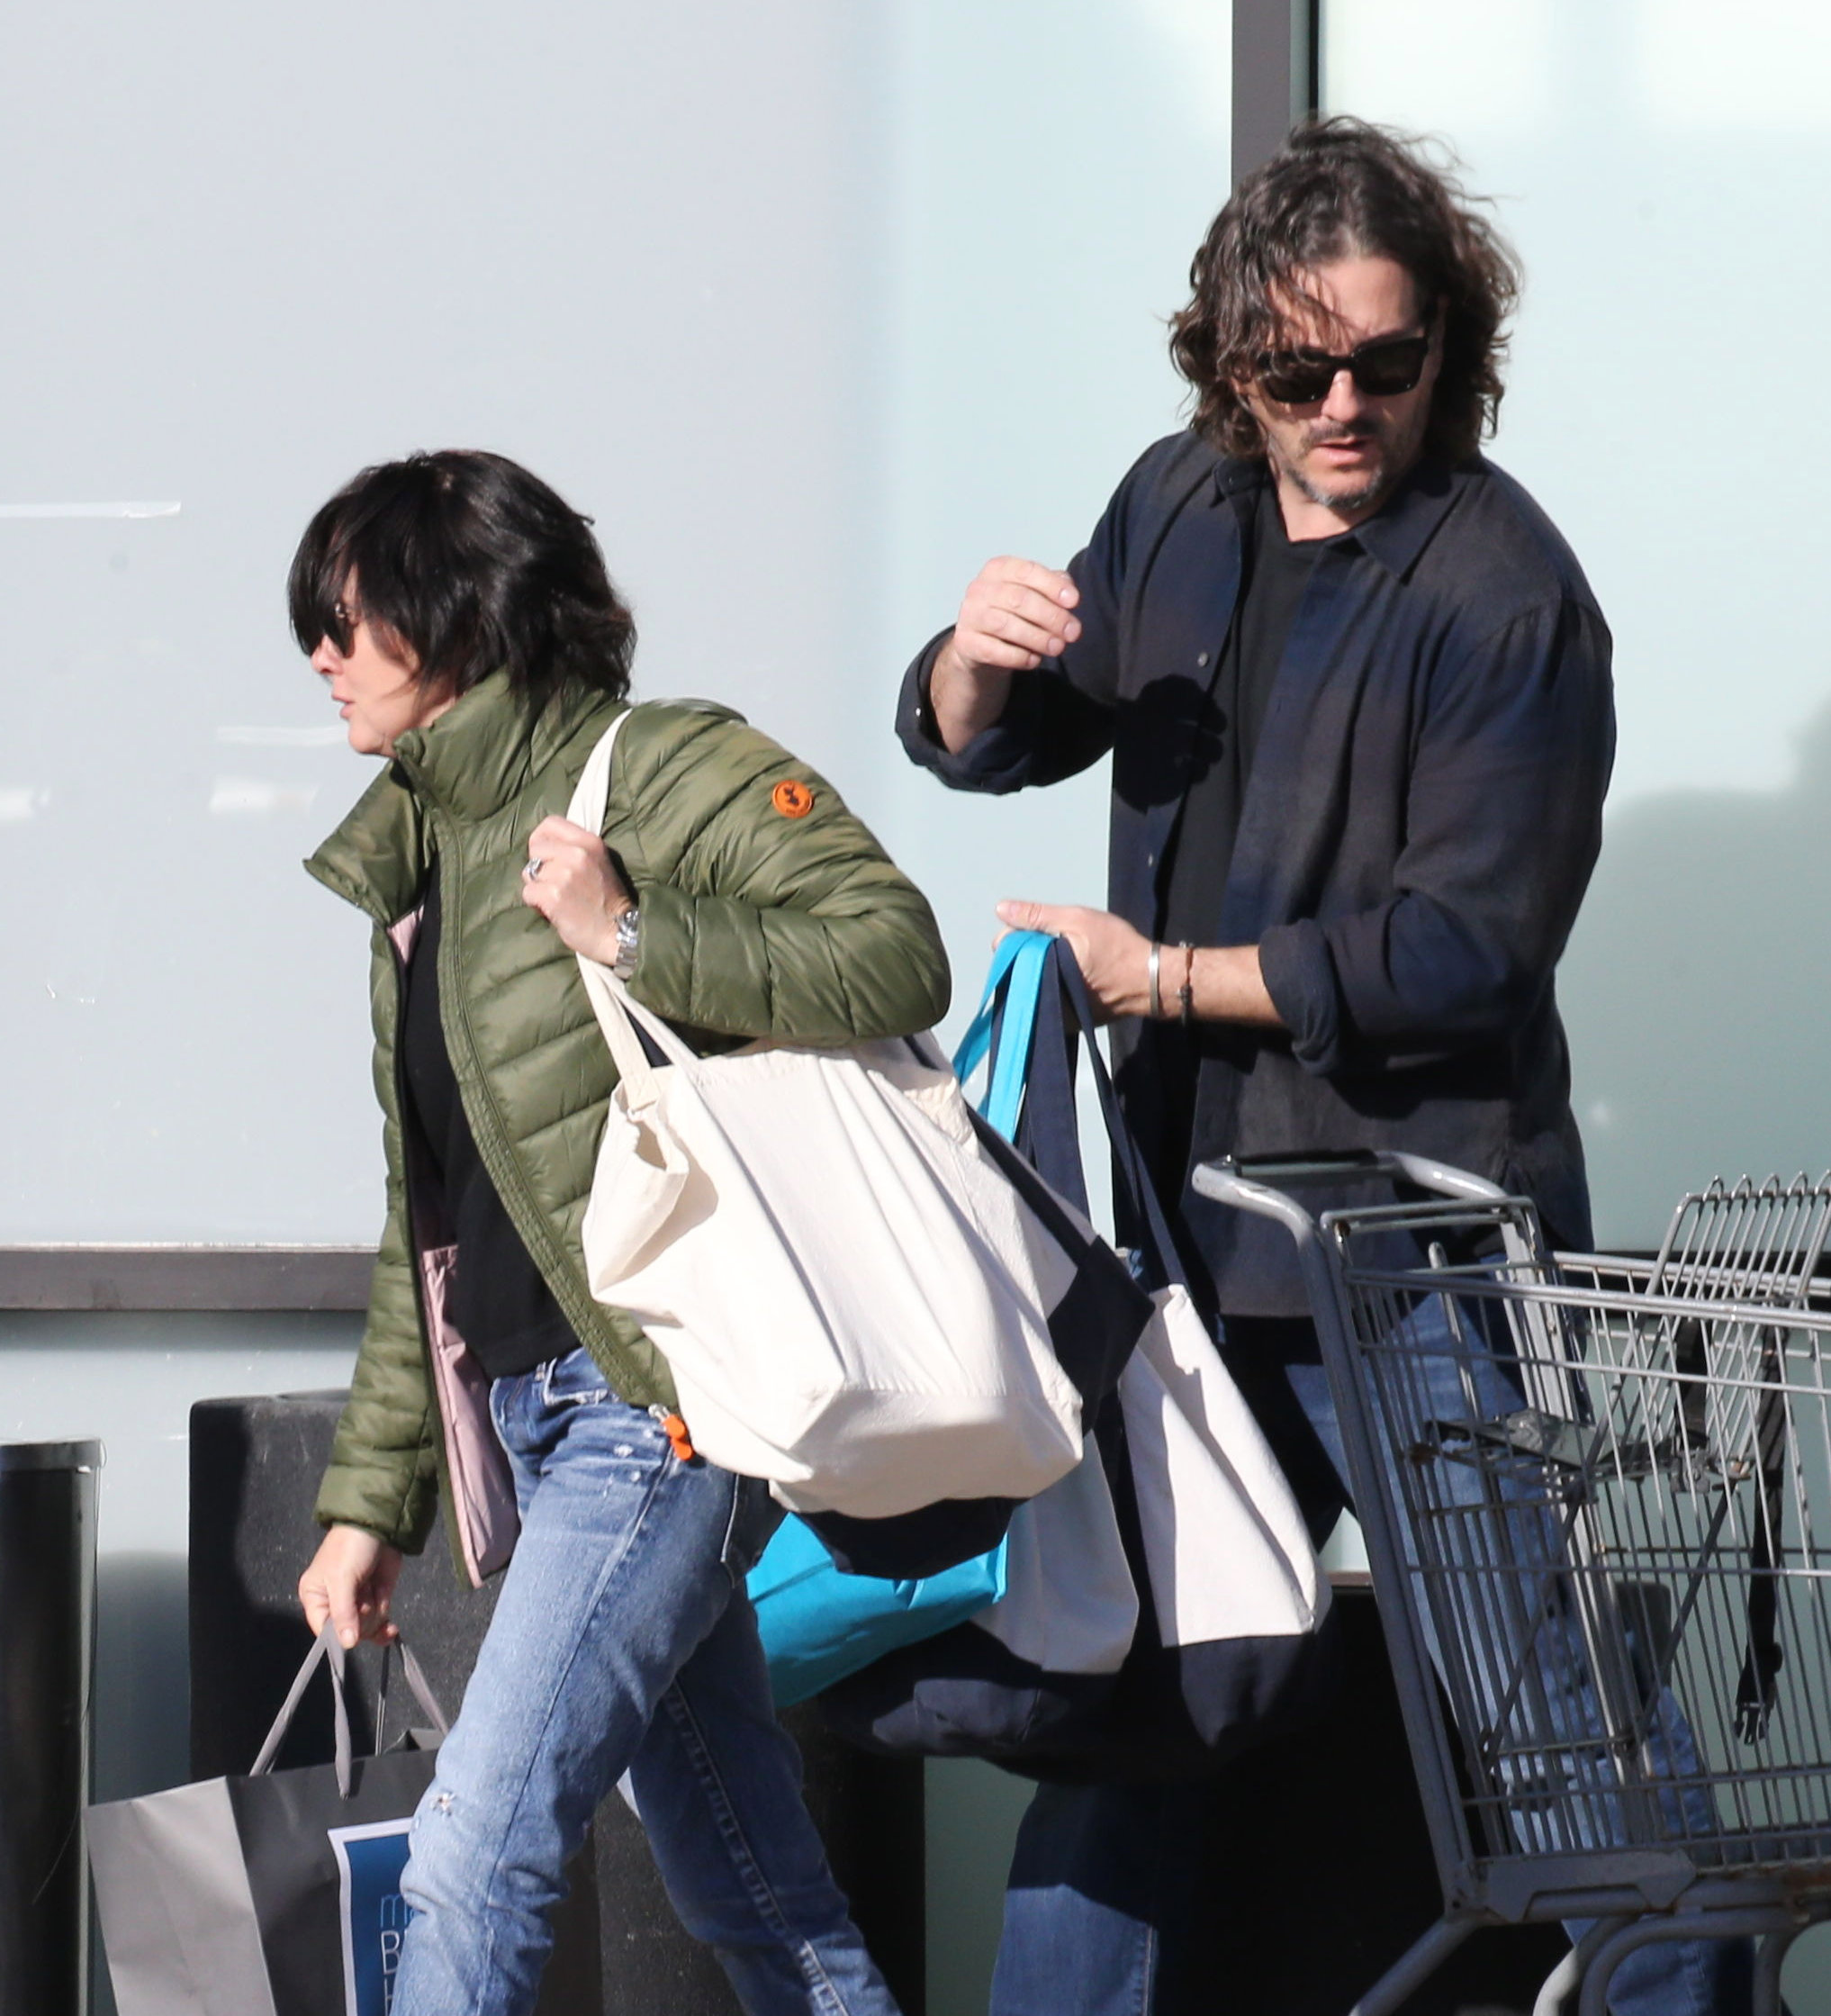 PREMIUM EXCLUSIVE Please contact X17 before any use of these exclusive photos - x17@x17agency.com   Sunday, February 25, 2018 - Actress Shannen Doherty looks extremely healthy, carrying several heavy bags as she goes grocery shopping with hubby Kurt Iswarienko in Malibu, CA., after her incredible recovery from breast cancer. Doherty, who returned to work filming scenes for the